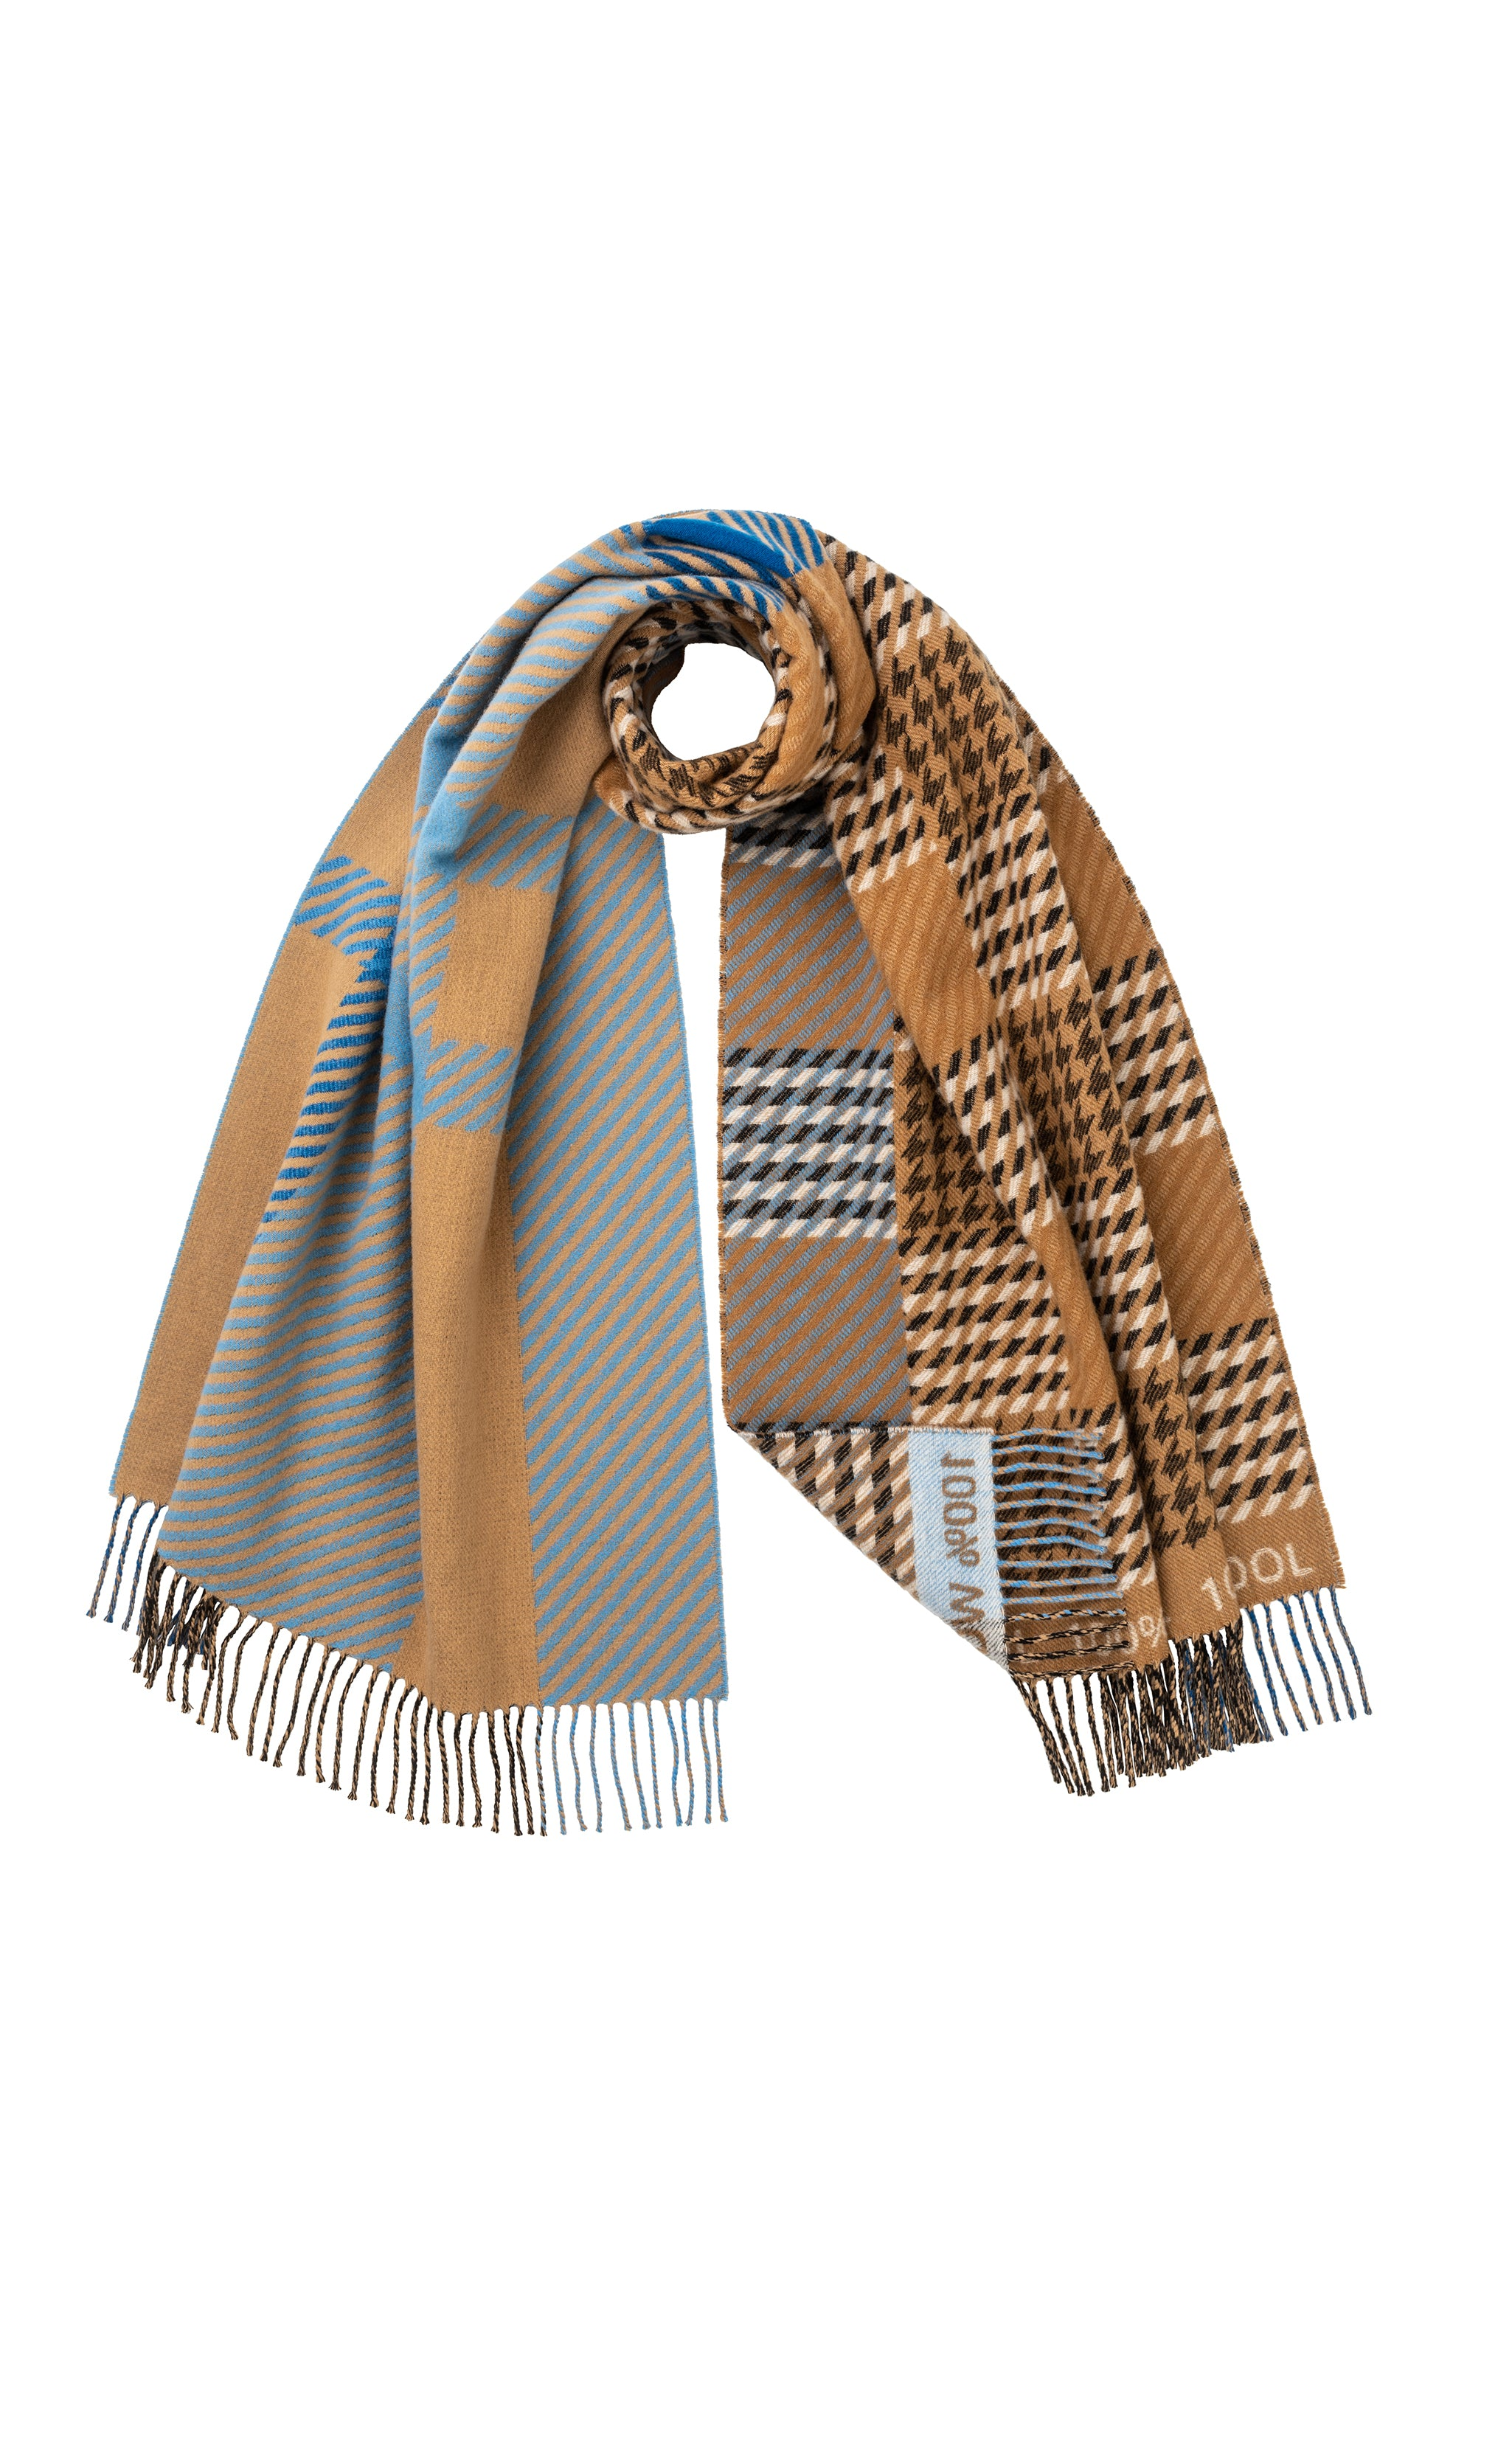 THE DERWENT SCARF- MOTHER OF PEARL X THE CAMPAIGN FOR WOOL